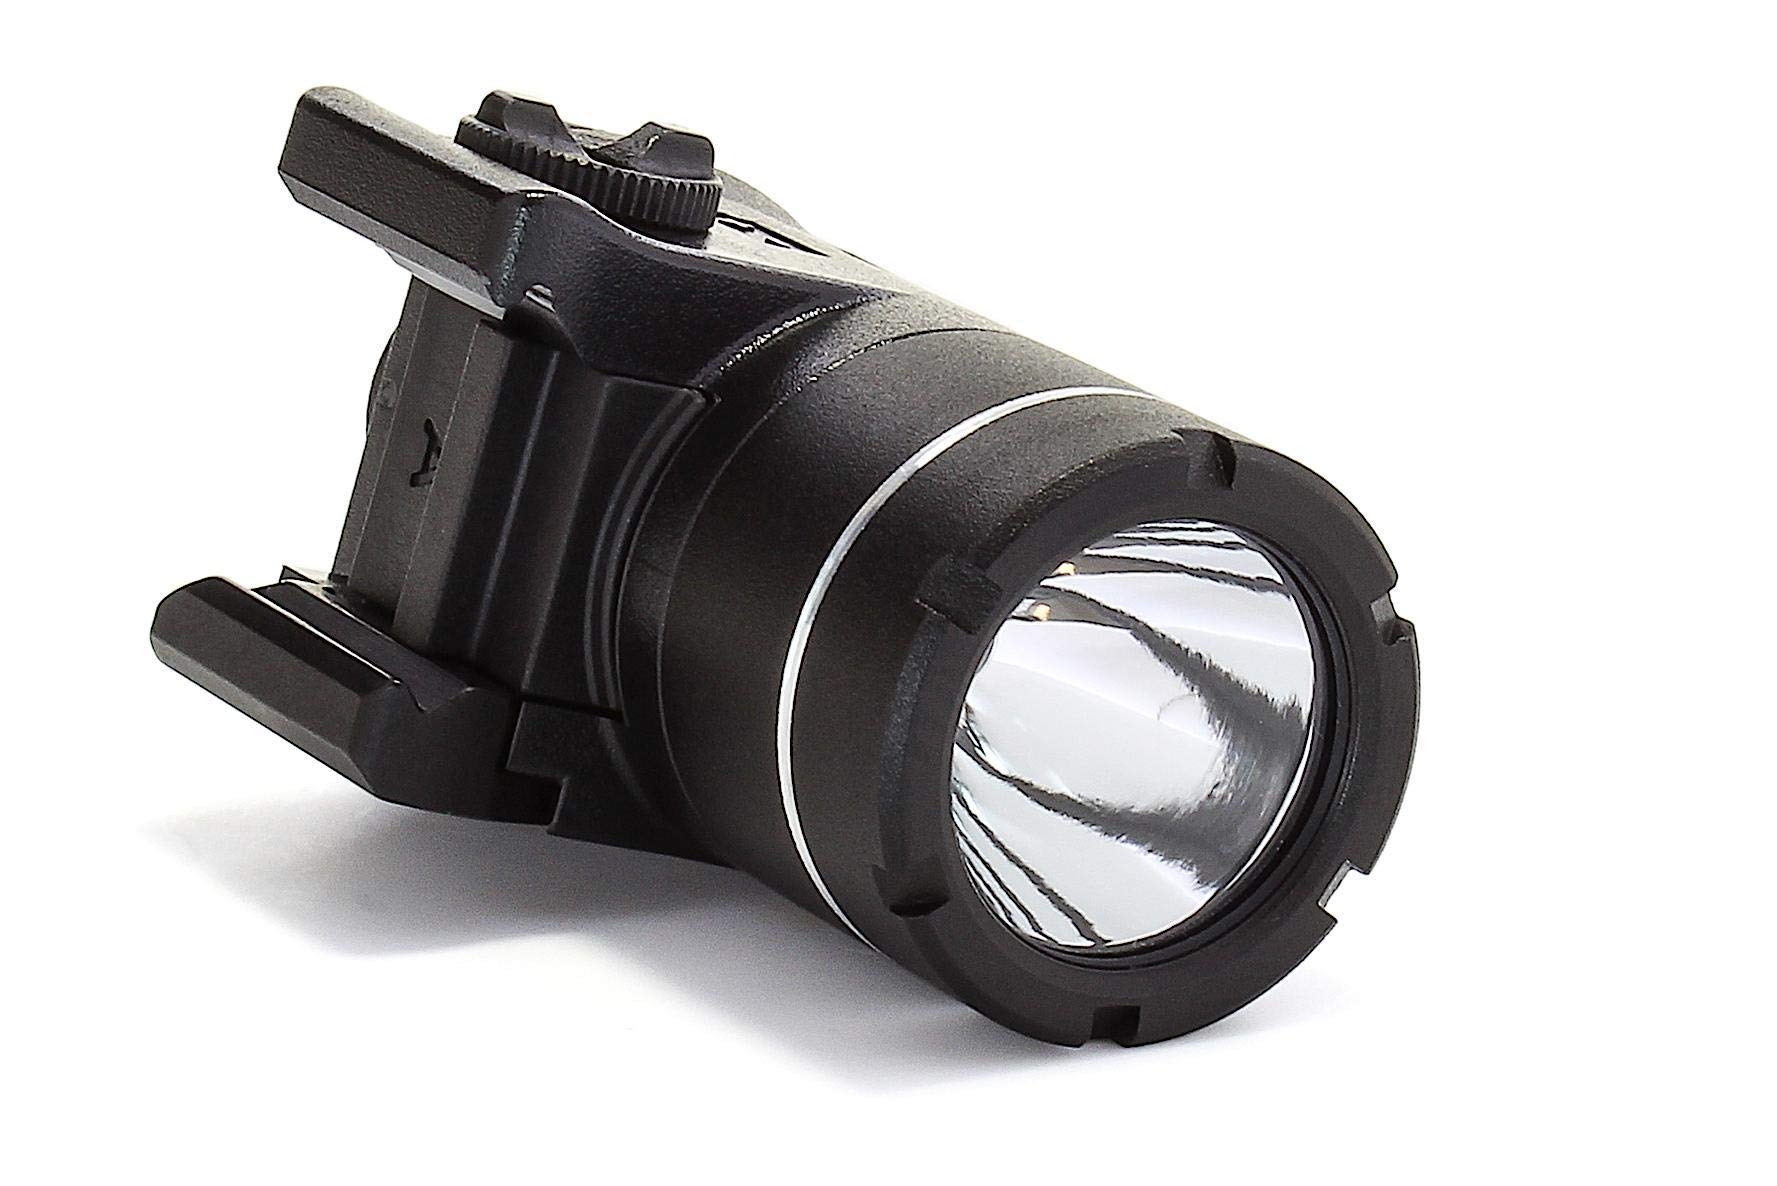 Streamlight 69245 TLR-4 Compact Rail Mounted Tactical Light with Integrated Green Laser and Wide Operating Range - 115 Lumens